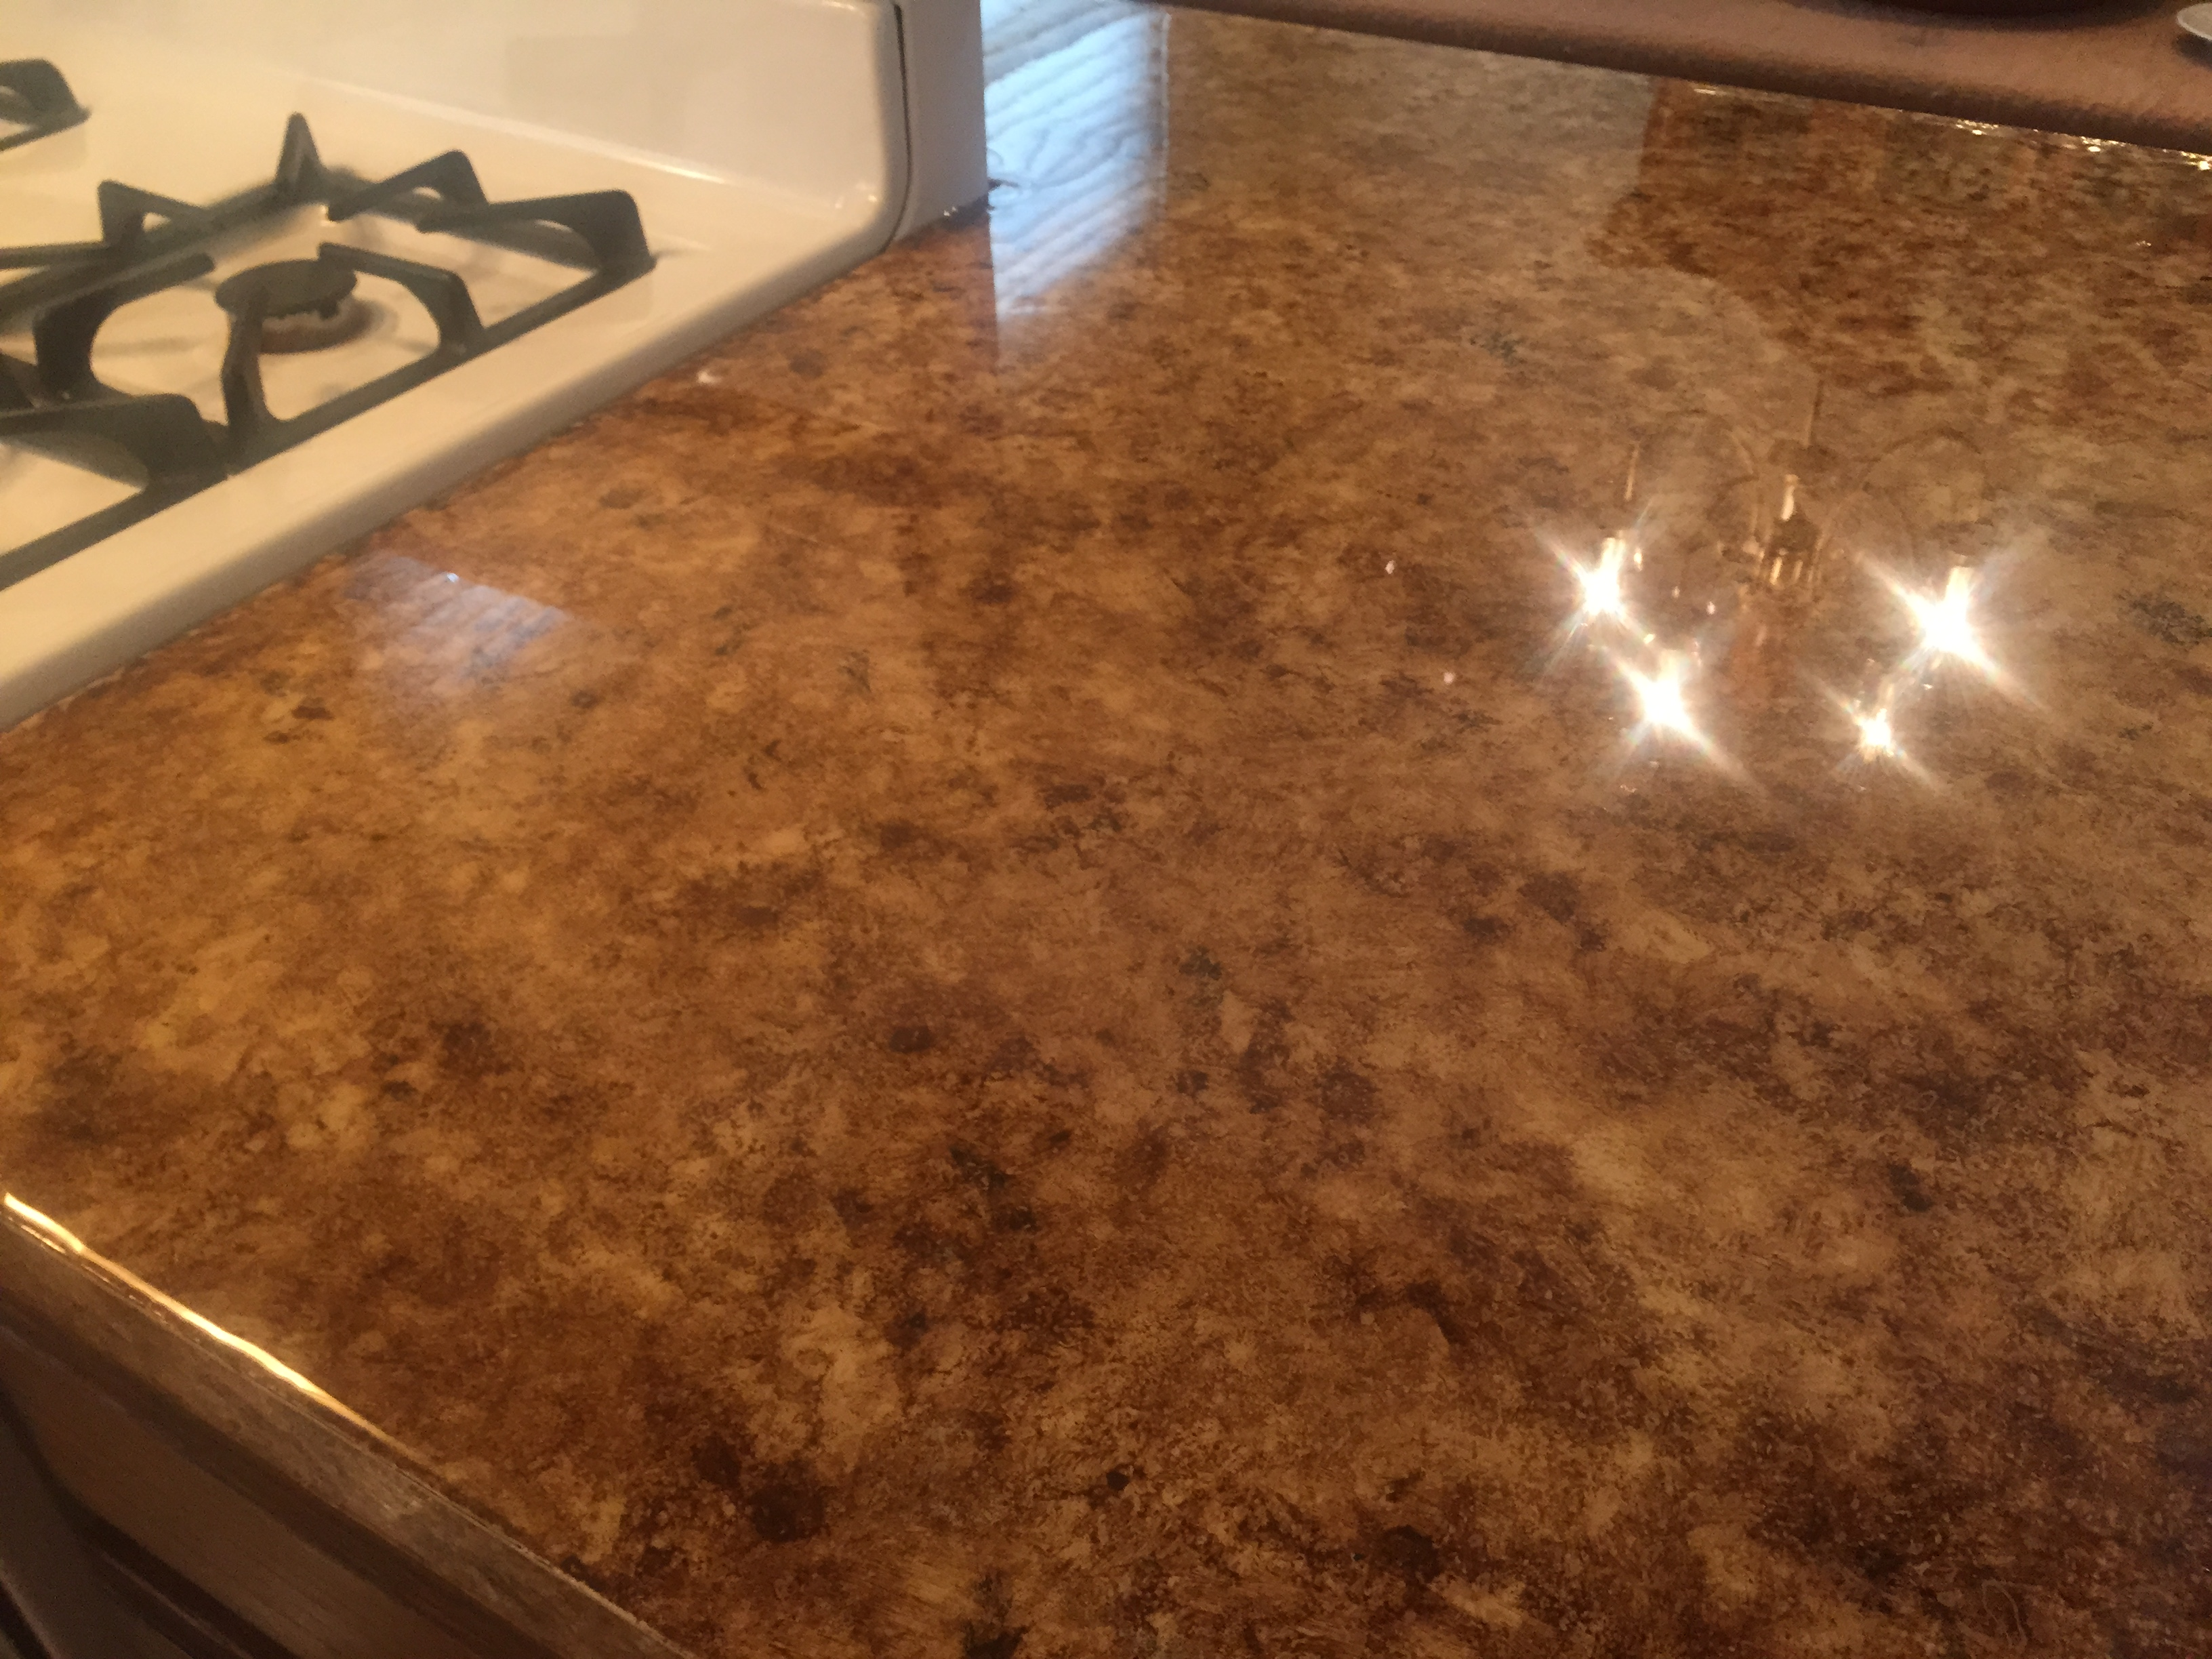 Countertop Refinishing - G. Go Decorative : G. Go Decorative